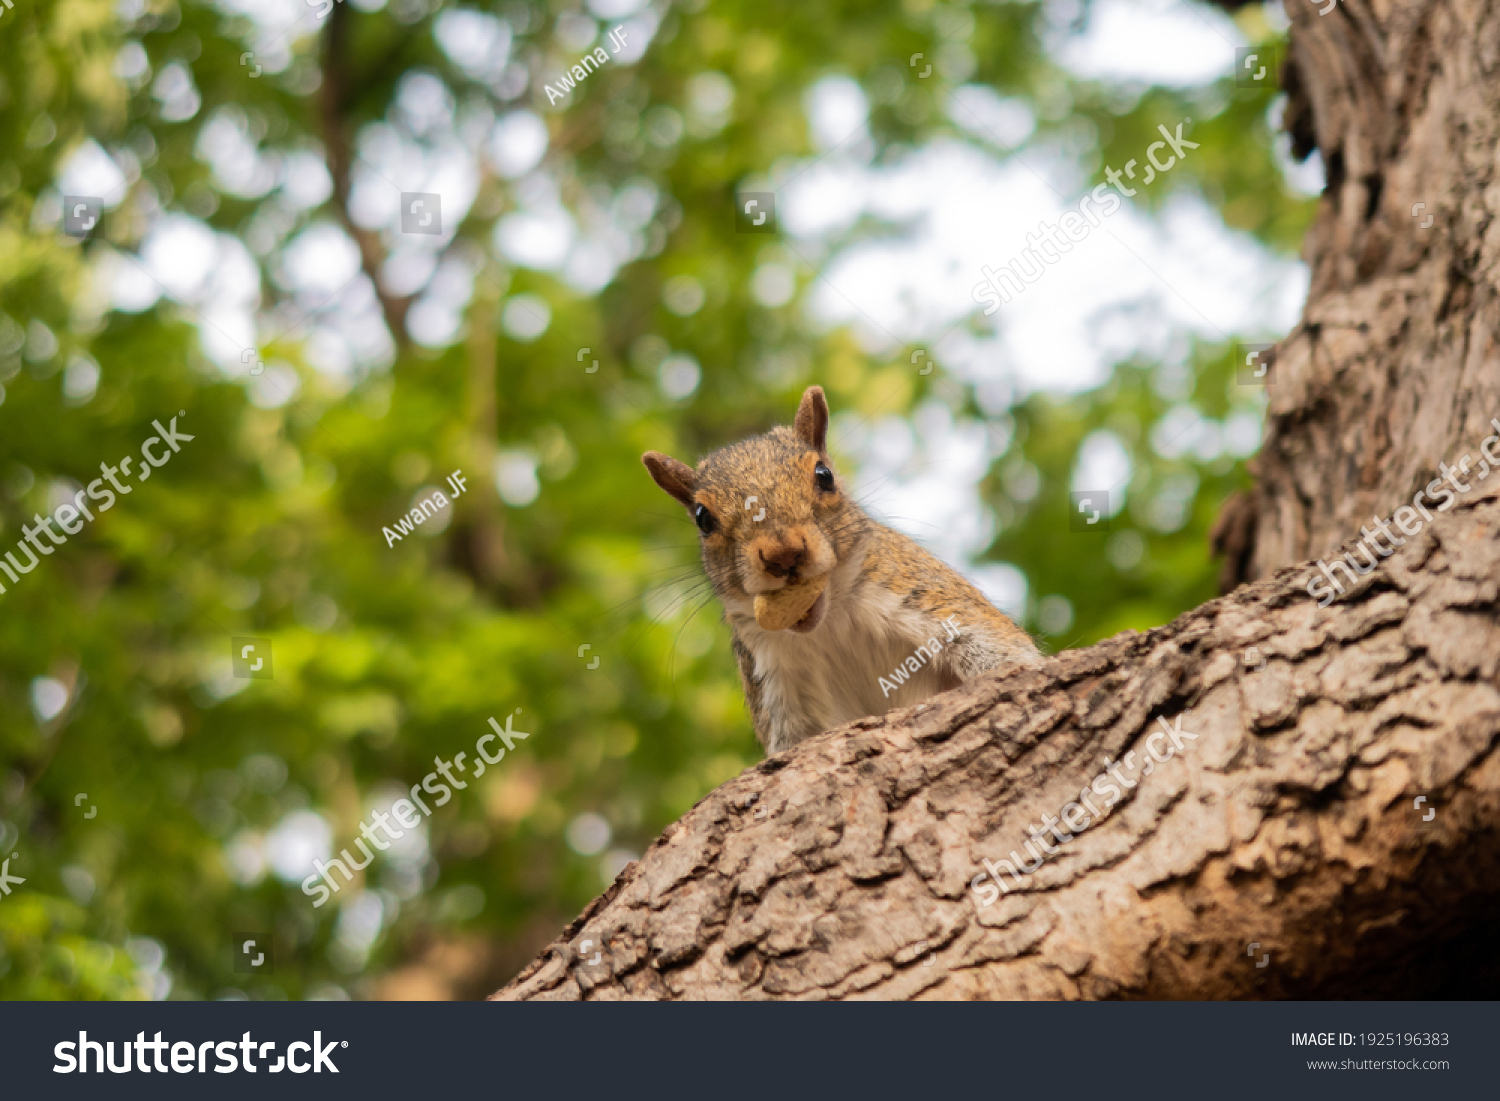 stock-photo-cute-squirrel-eating-an-almo